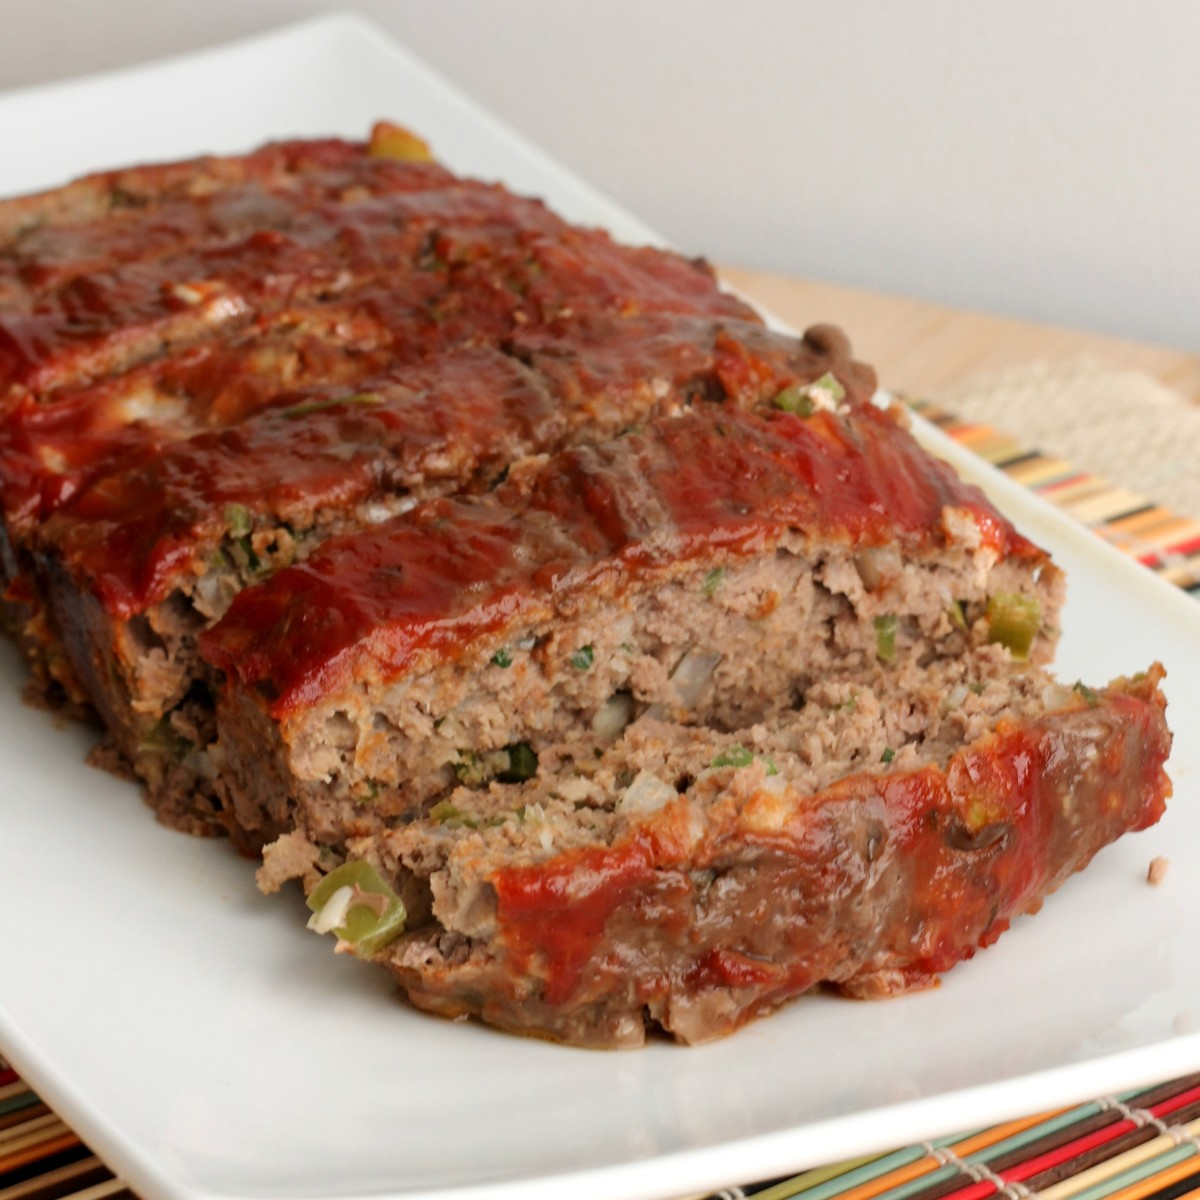 This is simply the best meatloaf you'll ever try.